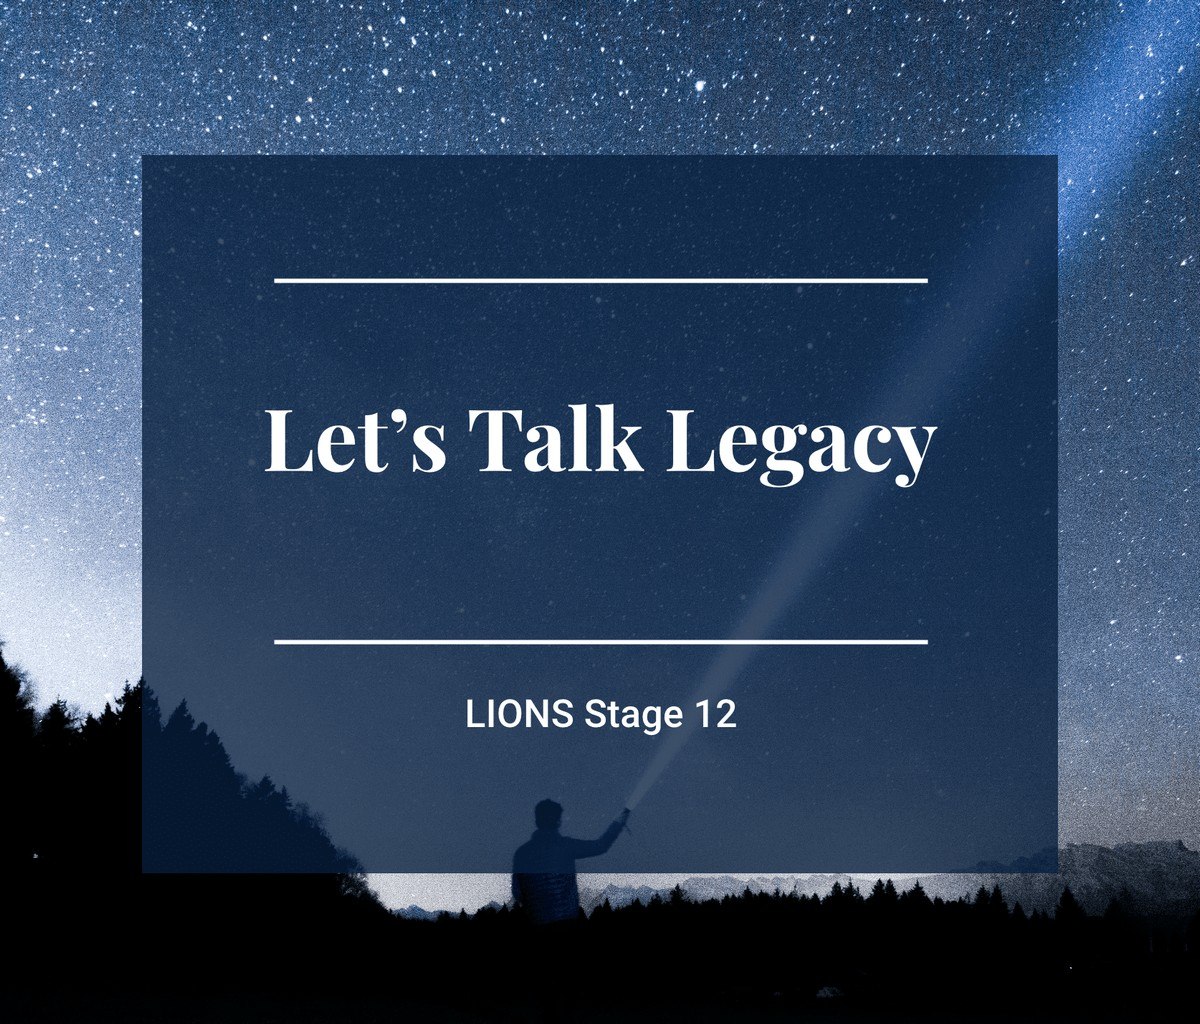 Lions Program Stage 12 Image